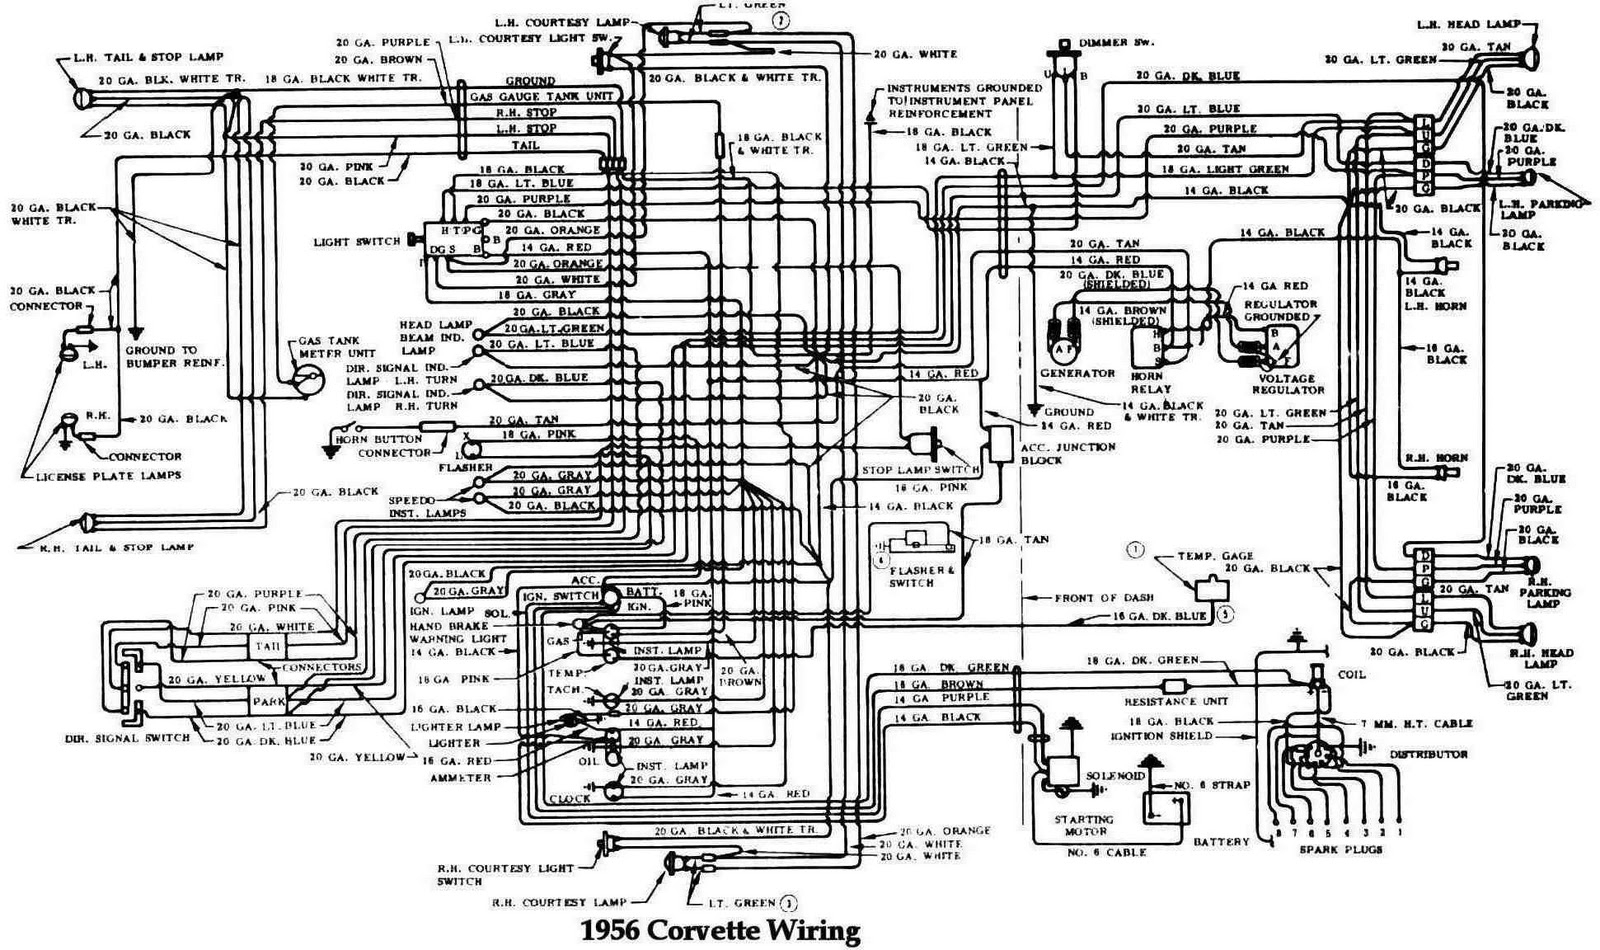 56 Mercury Wiring Diagram - Wiring Diagram Data Oreo - Mercury Outboard Wiring Diagram Schematic